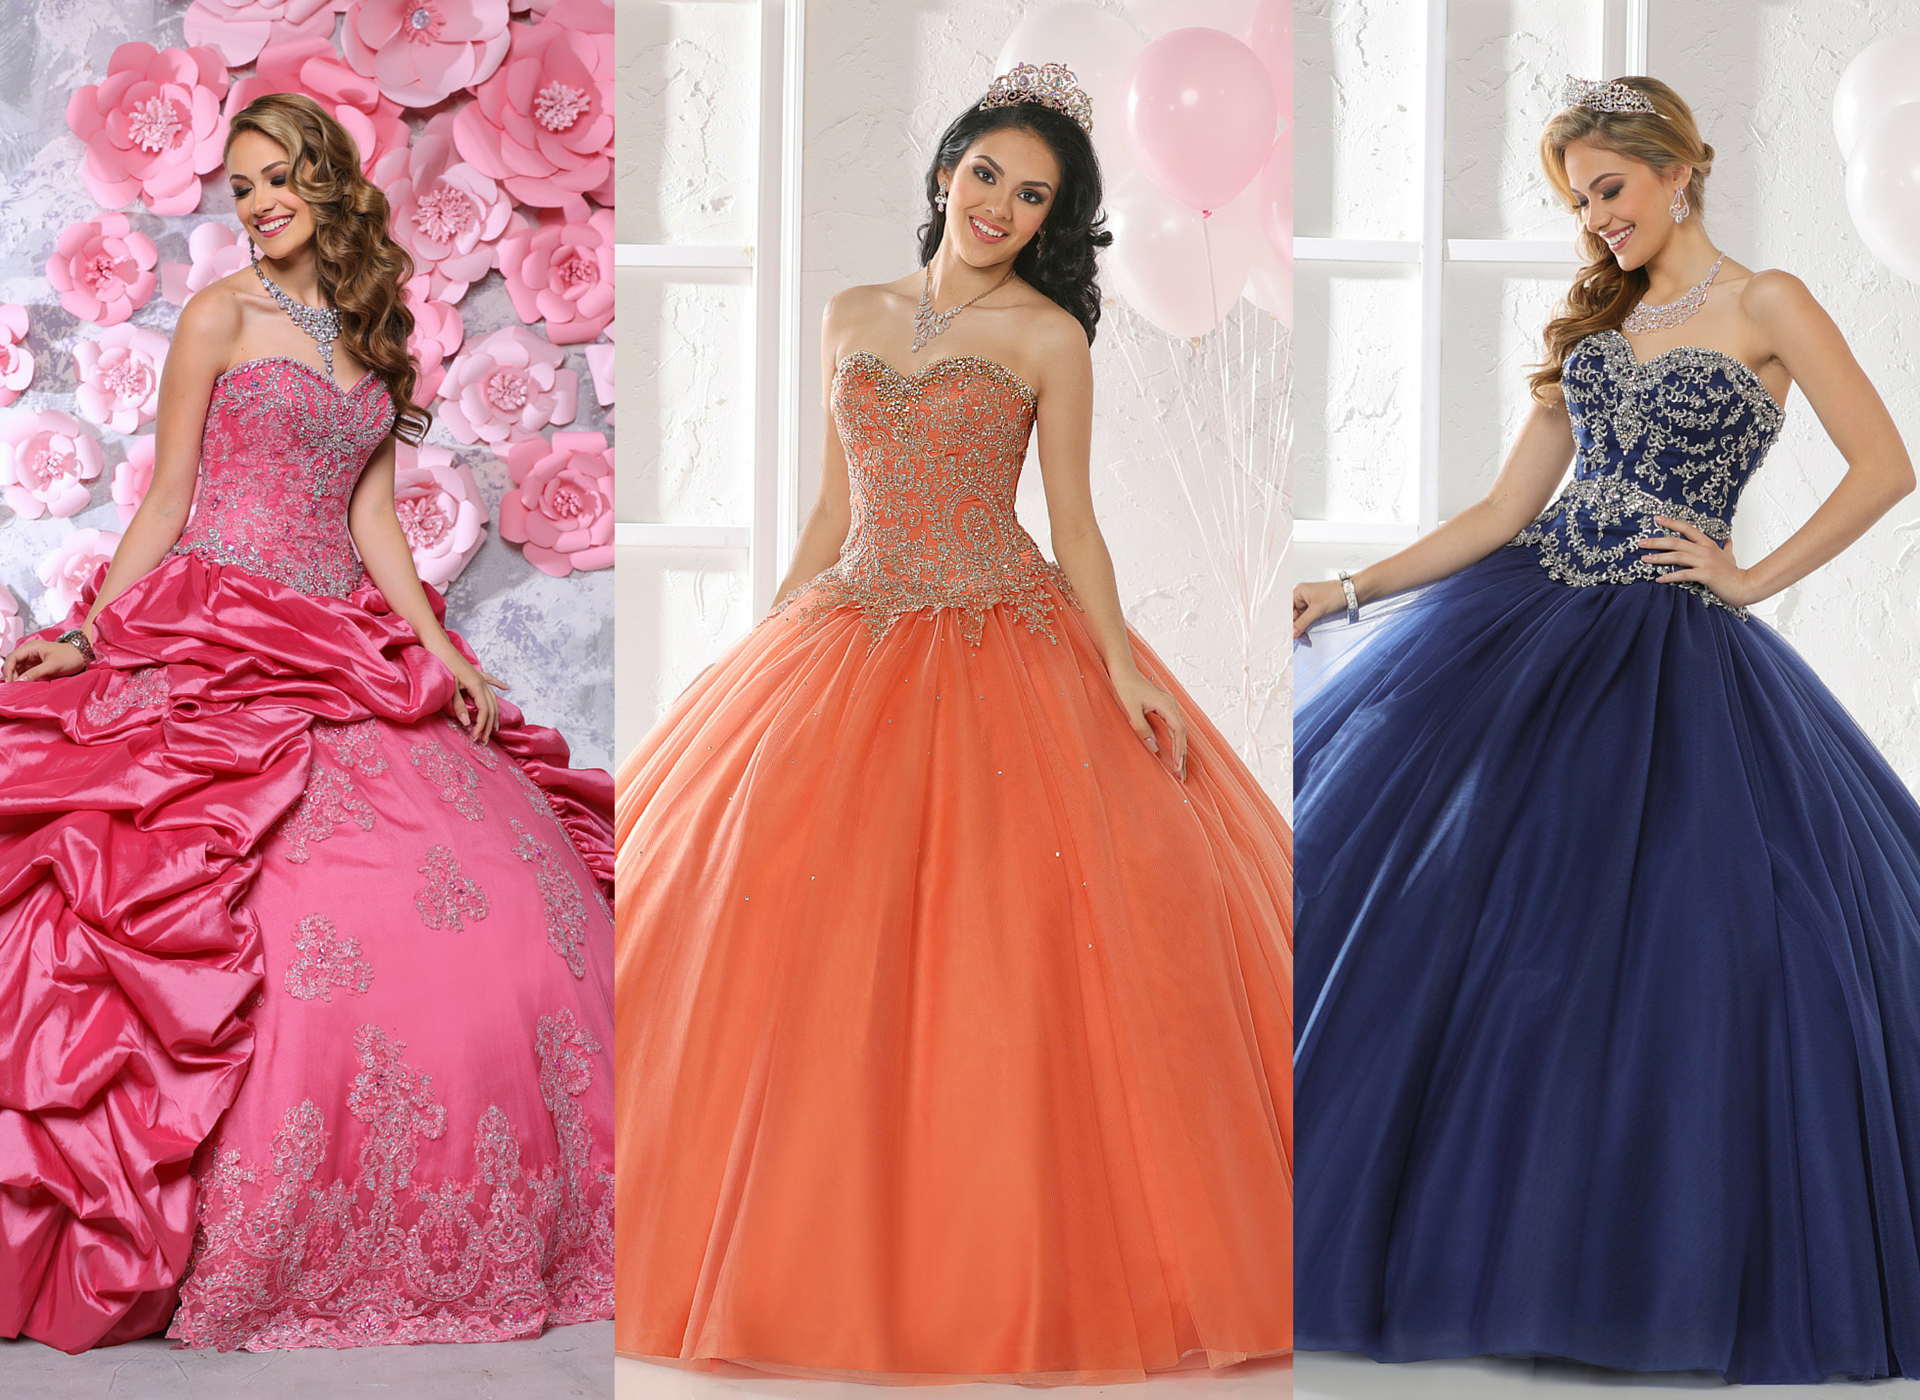 8 Tips for Hassle-Free Quinceanera Dress Shopping